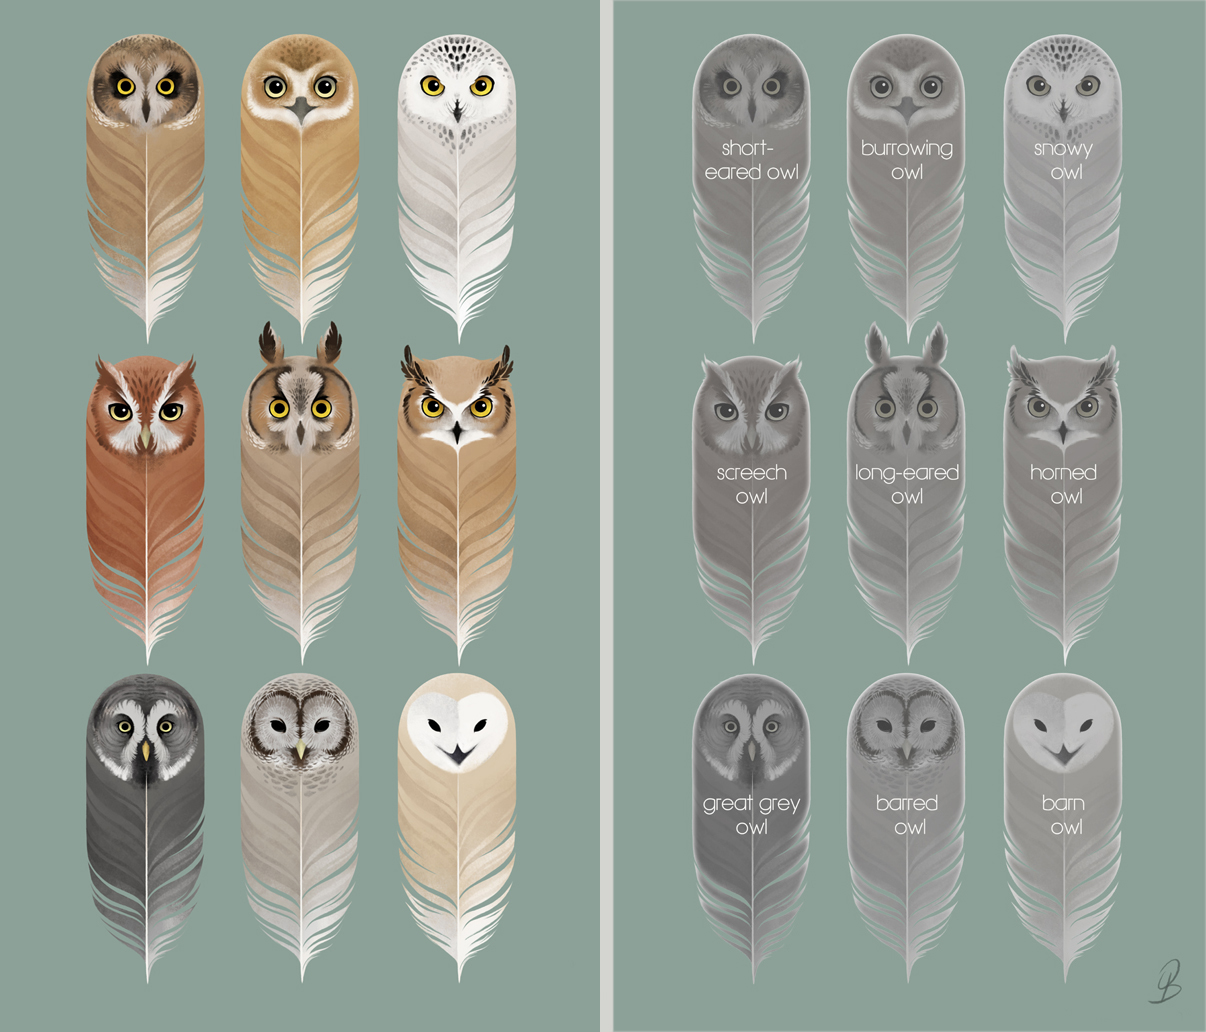 Birds of a Feather by Sash-kash on DeviantArt